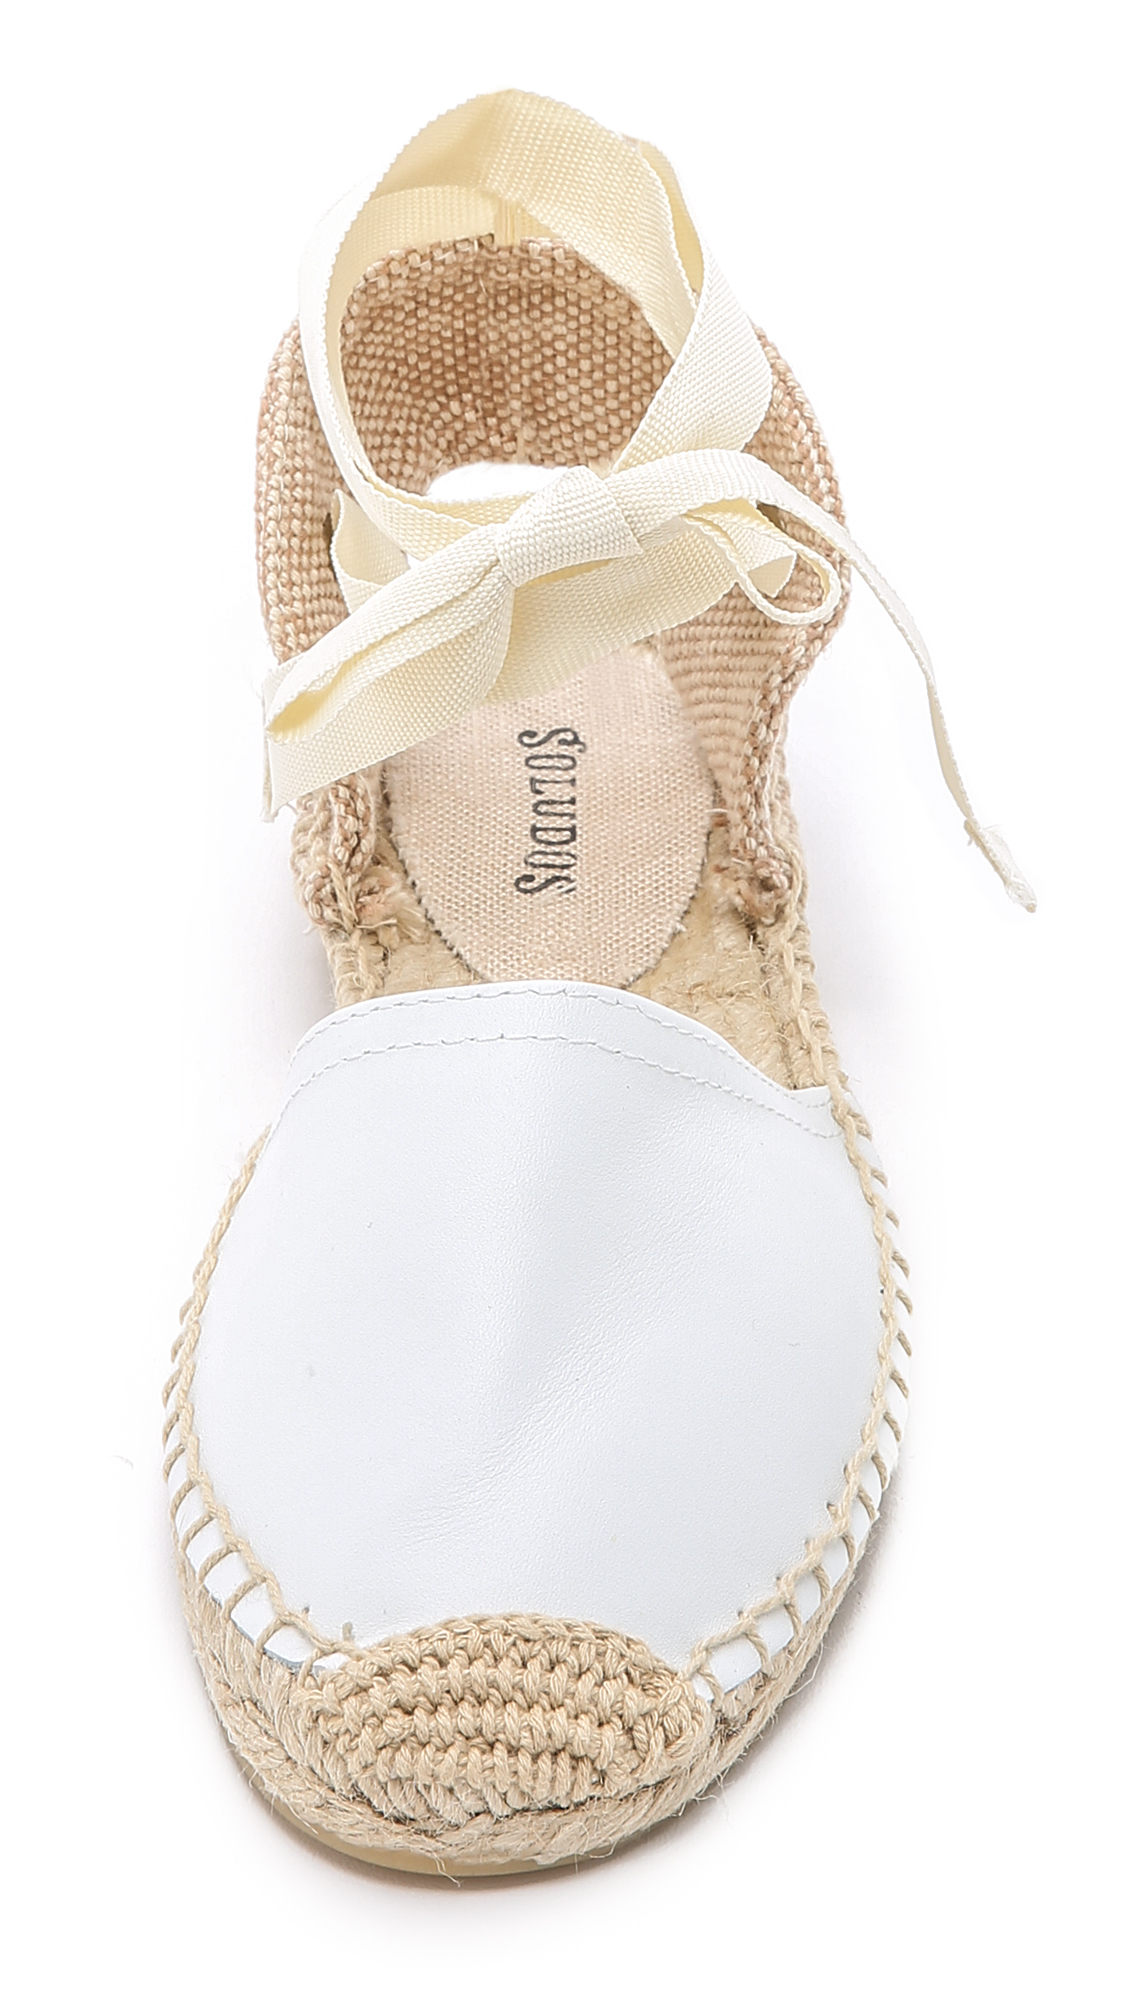 Lyst Soludos Leather Espadrille Sandals In White